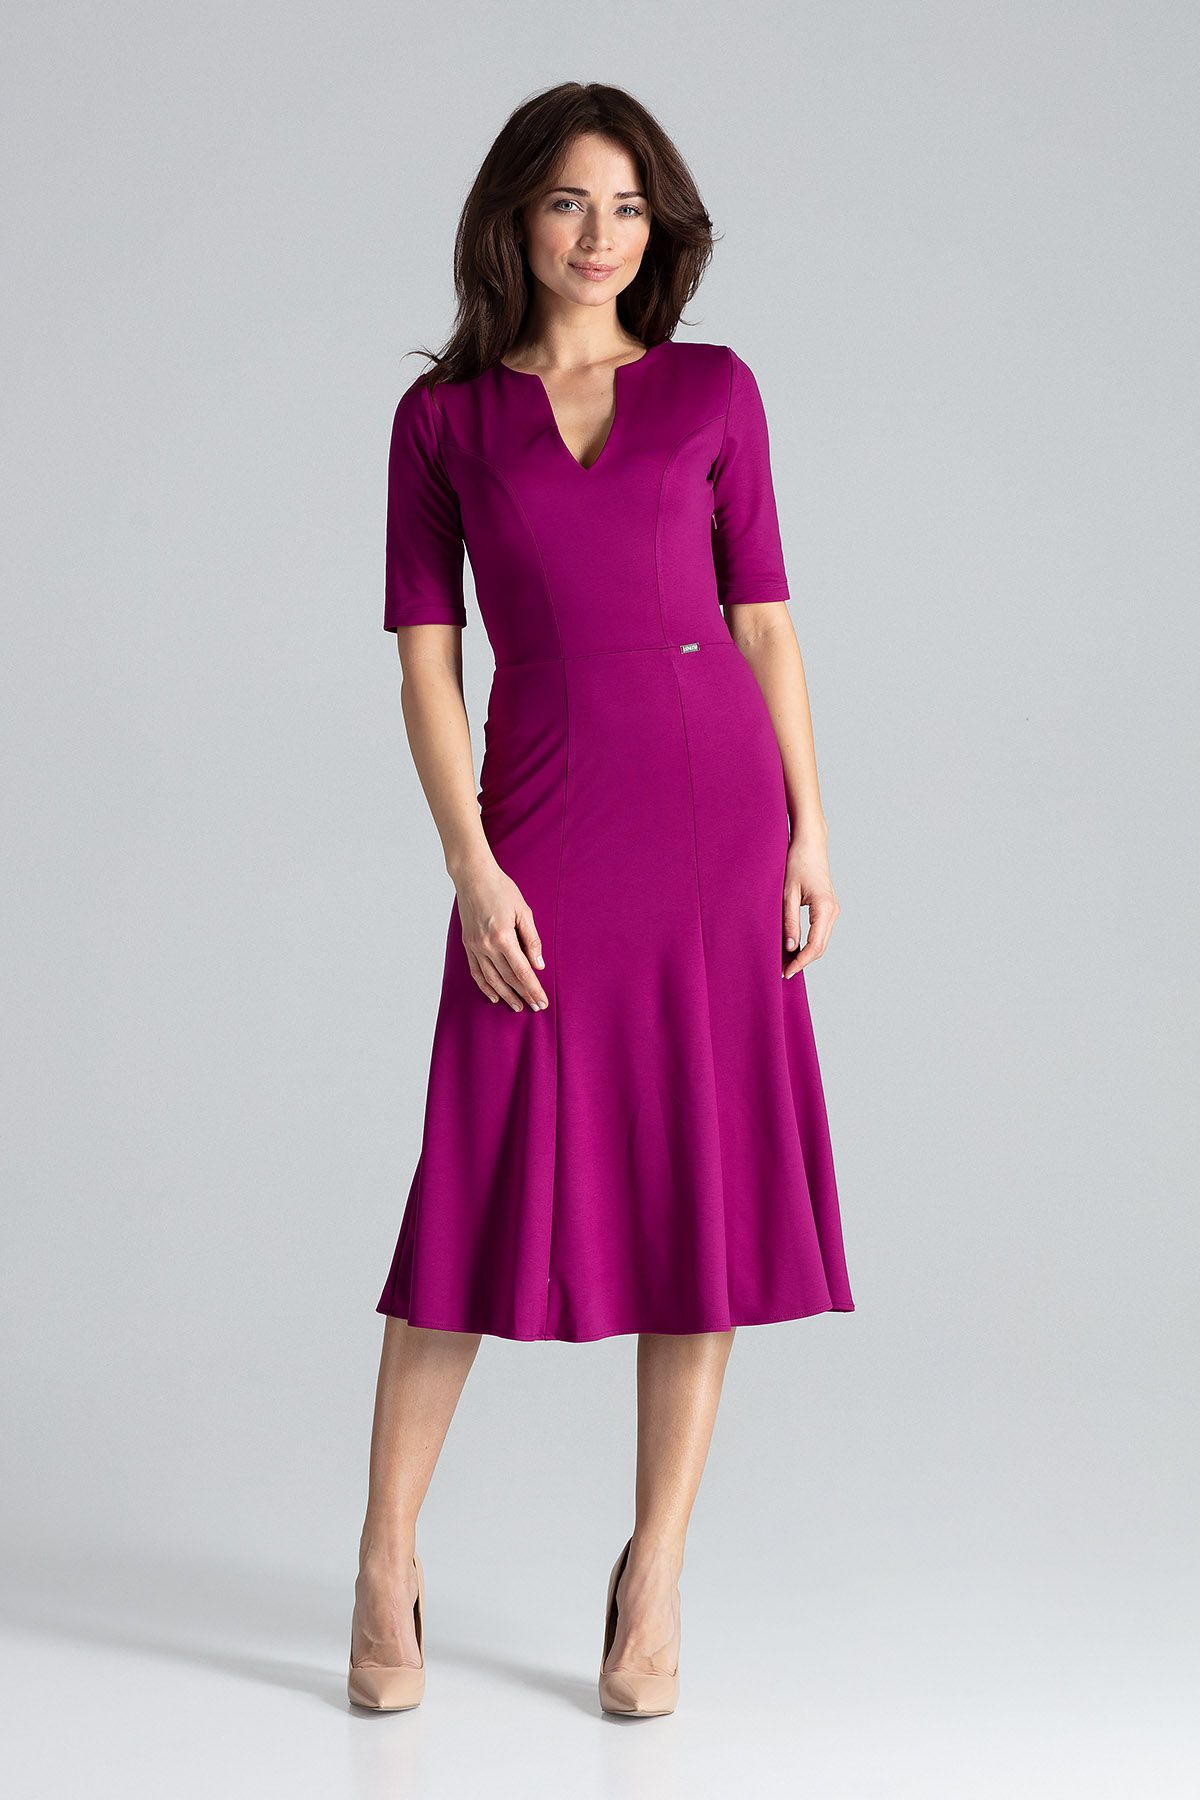 Midi Dress With Gussets With 3/4 Sleeves